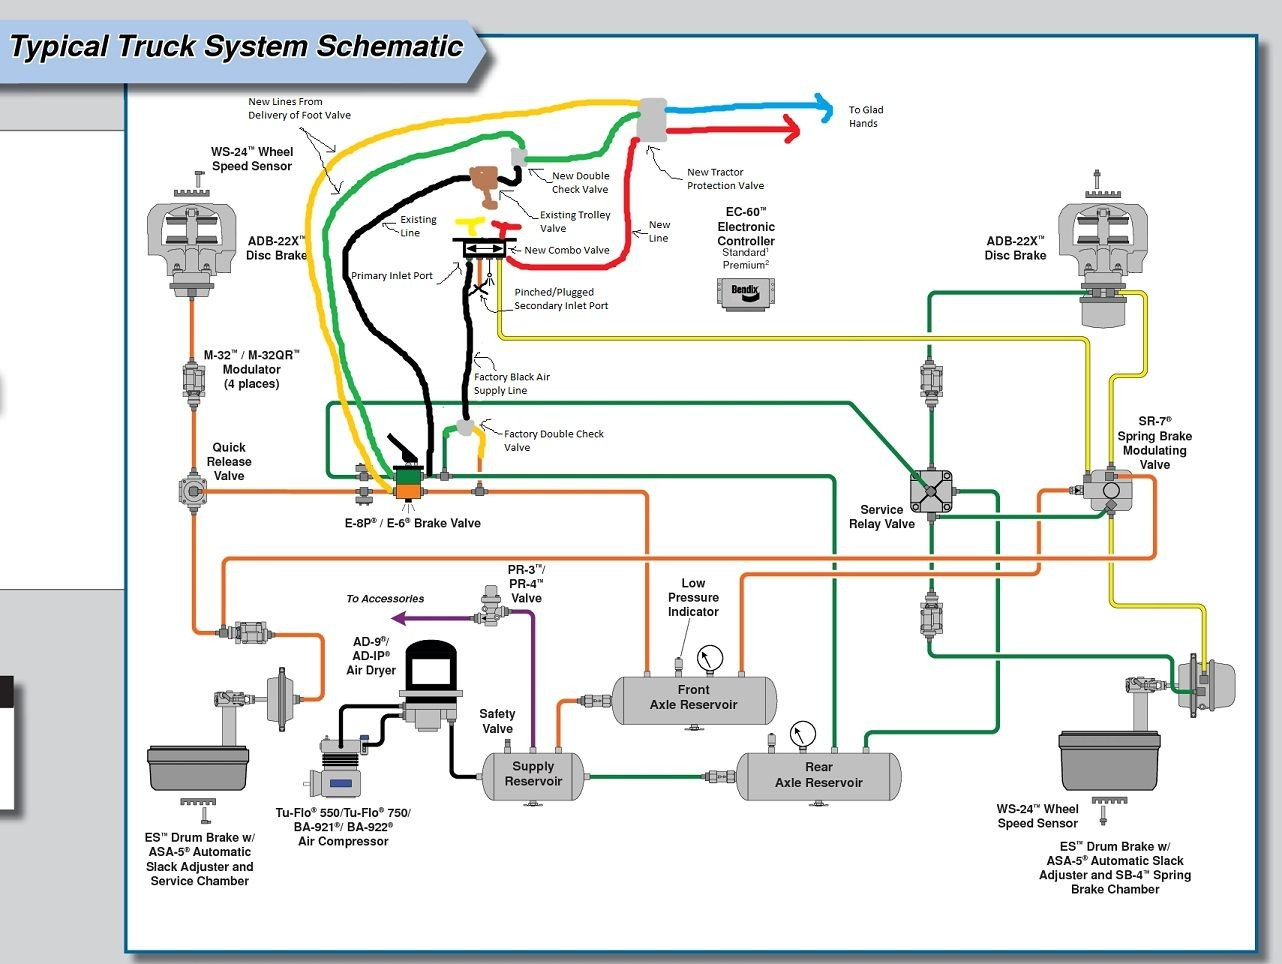 Truck Air Brake System Schematic Typical Air Brake Schematic Of Truck Air Brake System Schematic